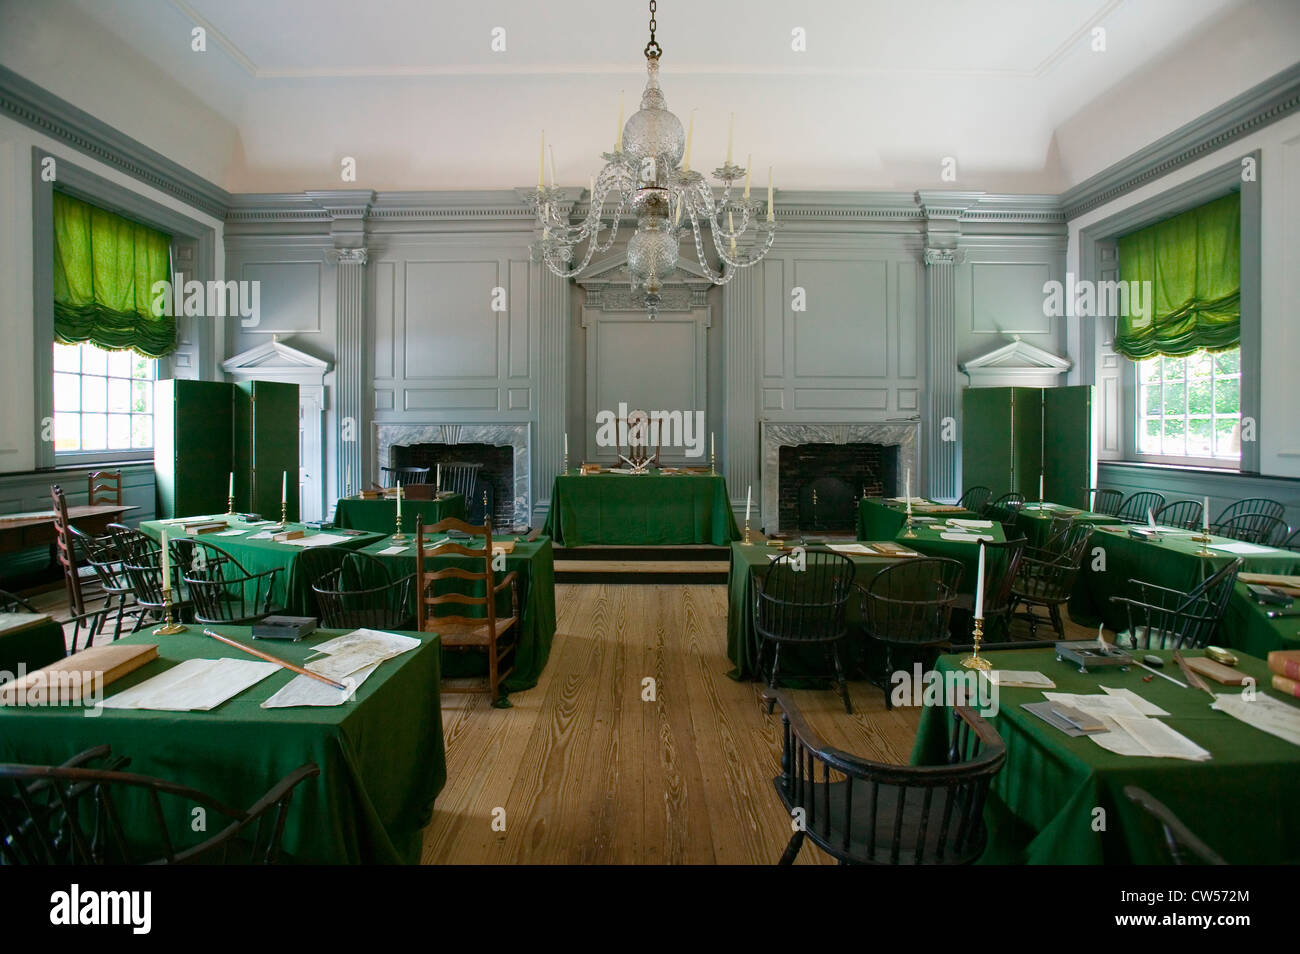 The Assembly Room where Declaration Independence and U.S. Constitution were signed in Independence Hall Philadelphia - Stock Image